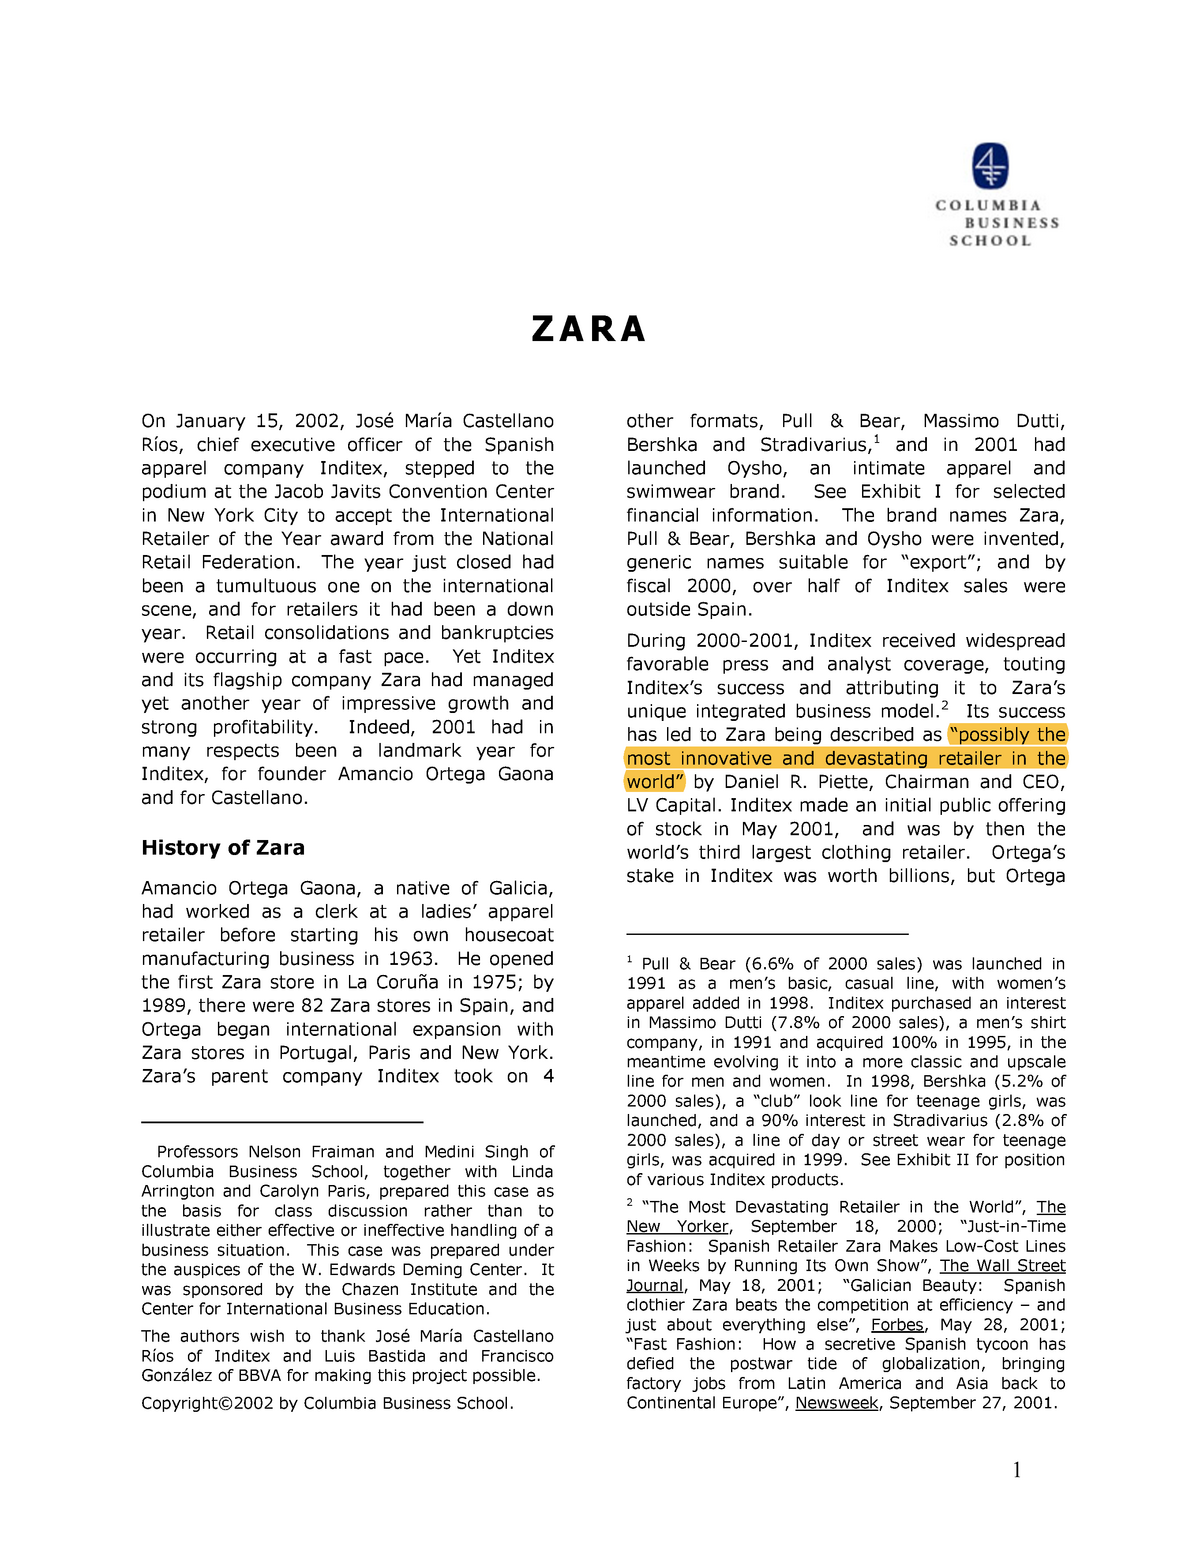 a7ad8748 Zara - Zara case study - BUAD311: Operations Management - StuDocu